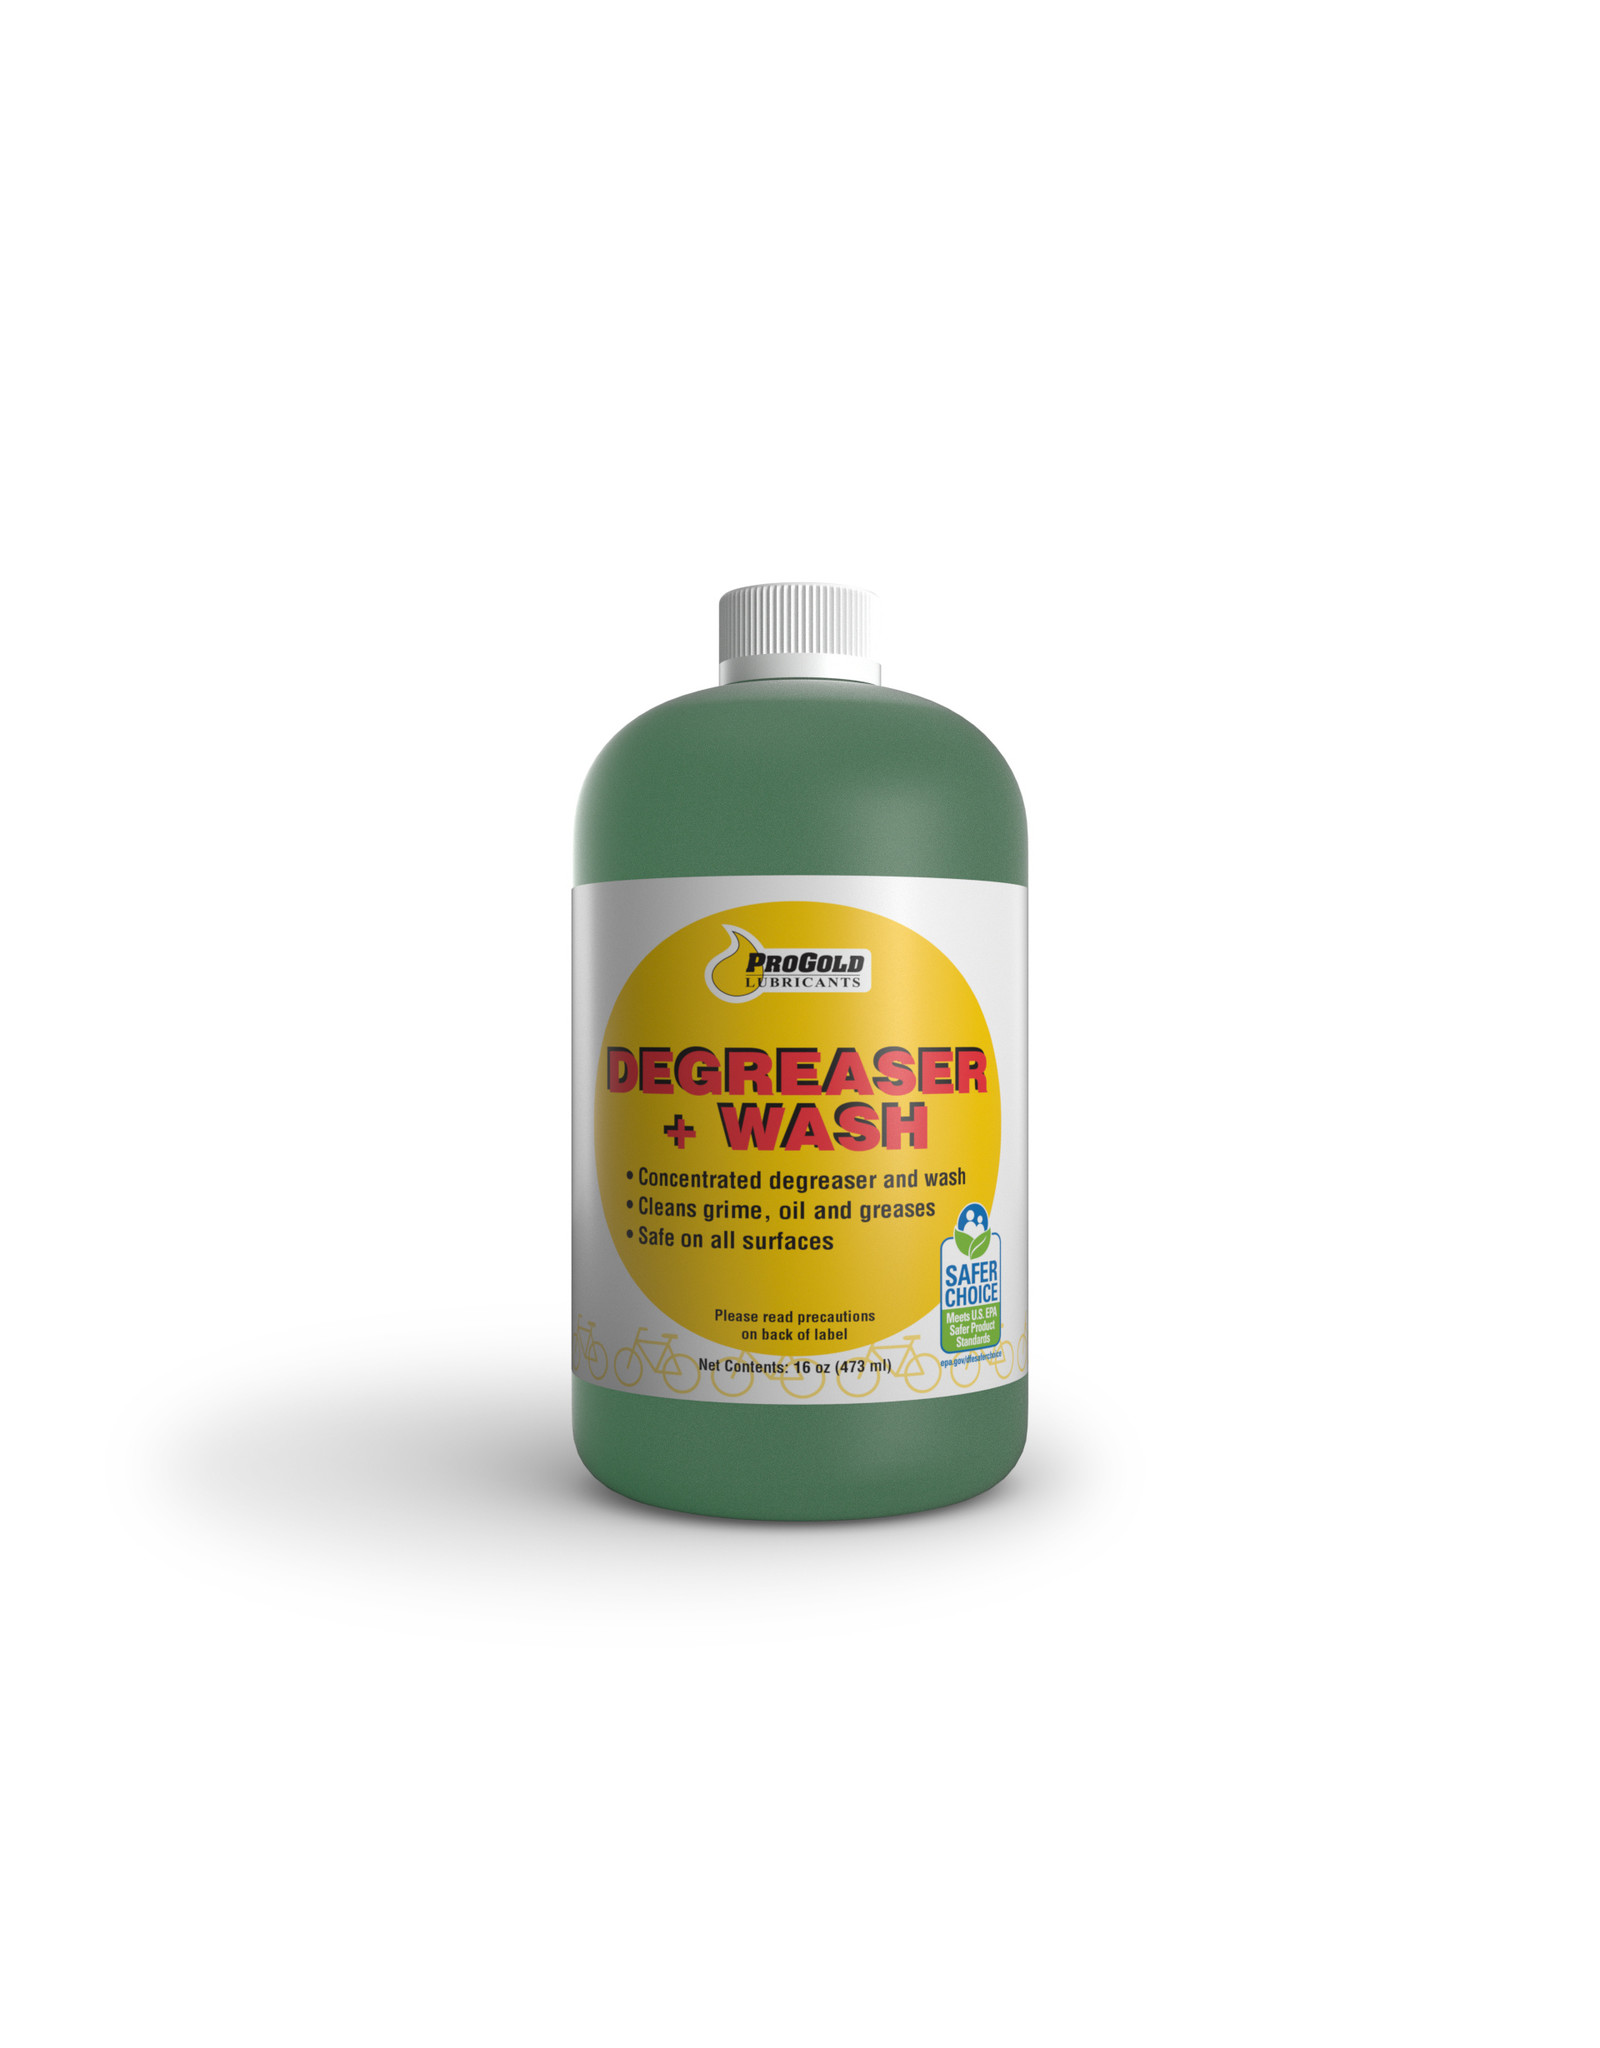 Pro Gold Products Pro Gold Degreaser + Bike Wash